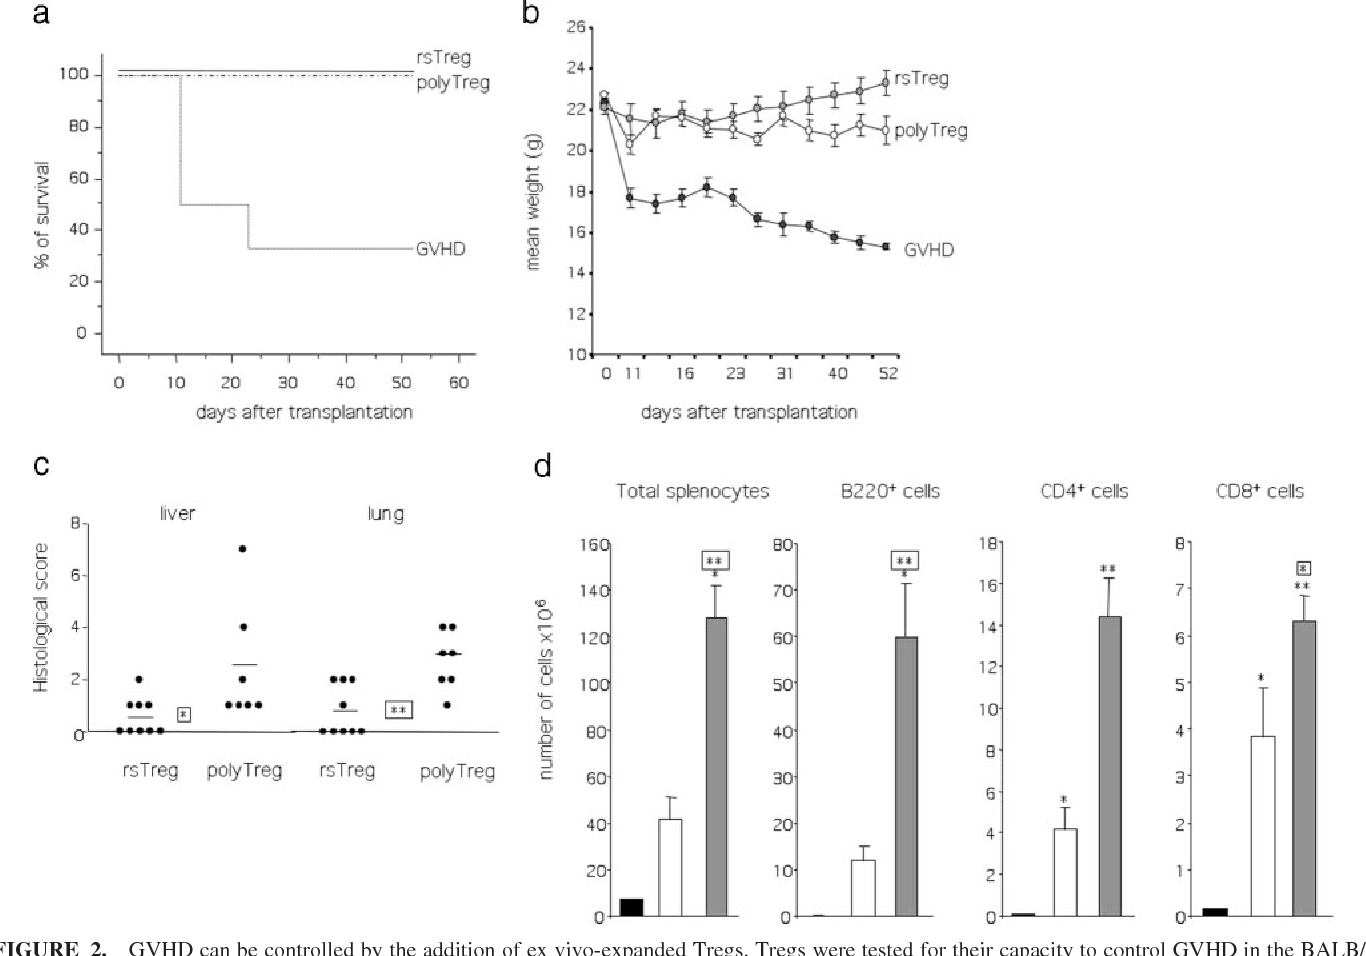 FIGURE 2. GVHD can be controlled by the addition of ex vivo-expanded Tregs. Tregs were tested for their capacity to control GVHD in the BALB/c 3 (BALB/c C3H)F1 combination. a, Kaplan-Meier survival curves were established in mice receiving 10 10 6 donor T cells alone (GVHD group; n 7) or coinfused with 10 106 rsTregs (n 9) or 10 106 polyTregs (n 7). b, Mean weight curves were established after mice were weighted at different time points during the experiments. c, Histopathologic scores of liver and lung after semiallogeneic BM transplantation. Grading of GVHD was performed 52 days after transplantation. Points correspond to histopathological score of individual mouse, and horizontal bars show the mean histopathological score for each group. d, Immune reconstitution after allogeneic HSCT was evaluated 52 days after transplantation. Total splenocytes were counted and stained with appropriate mAbs. The number of B, CD4 , and CD8 cells was evaluated after analysis by flow cytometry for GVHD control mice (f; n 2), mice receiving 10 106 rsTregs (u; n 9) or 10 106 polyTregs ( ; n 7). Histograms display the mean number SEM of cells for each group.